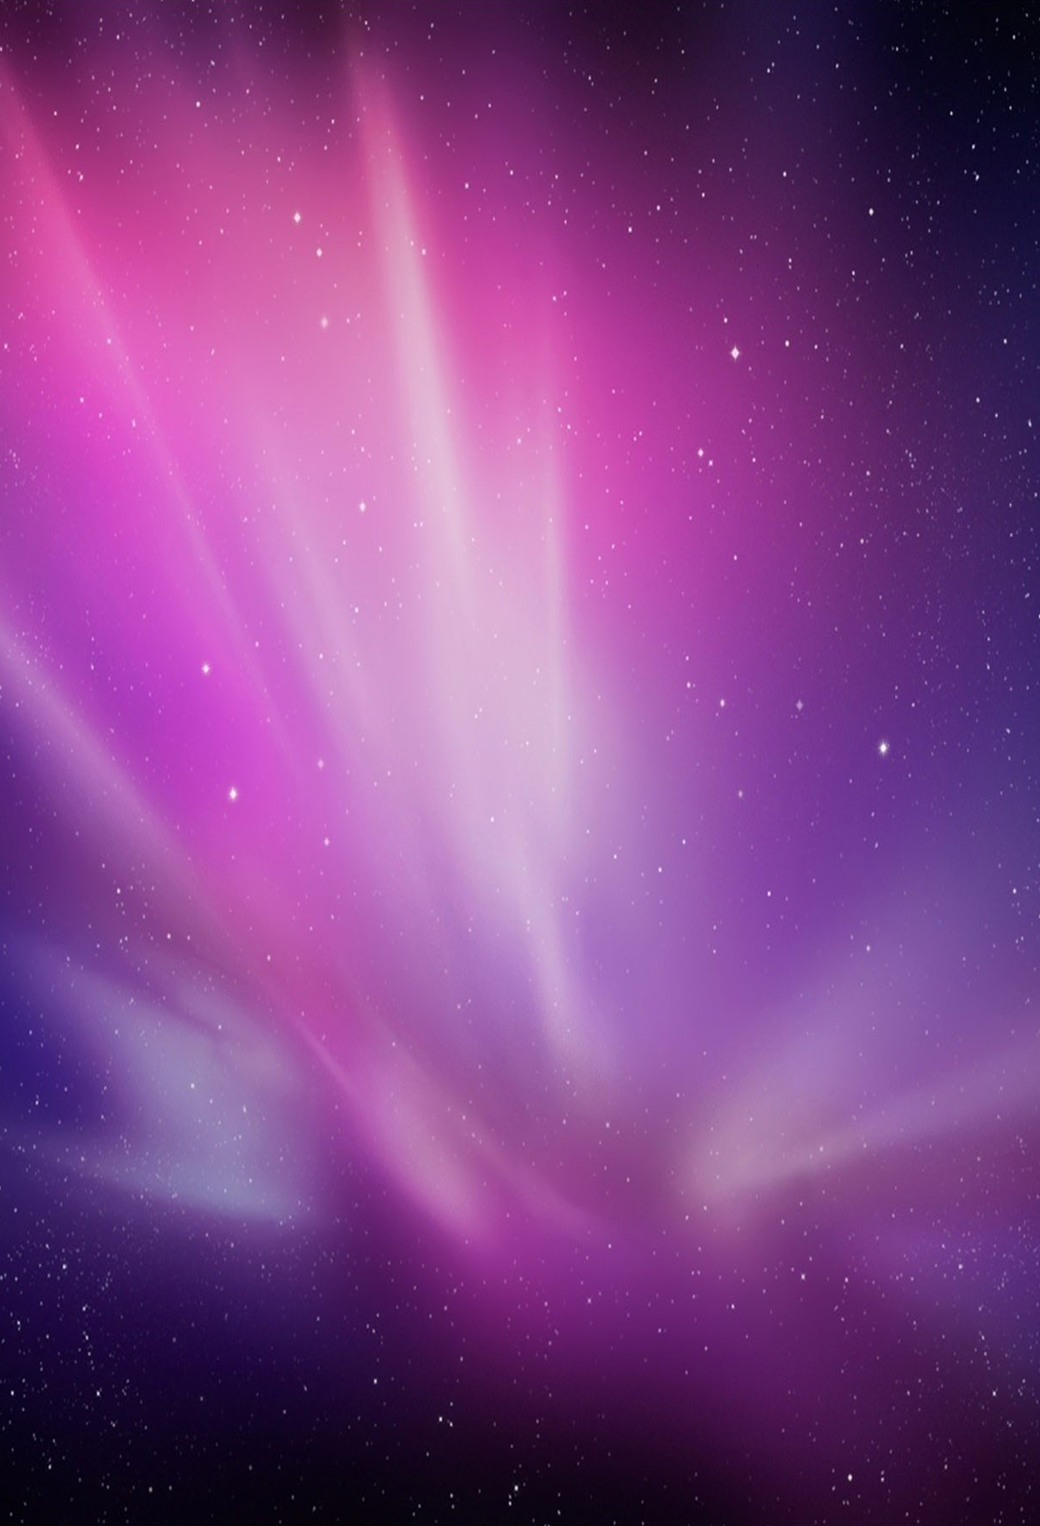 wallpaper ios cool: 20 Parallax IOS 7 Wallpapers For IPhone Ready To Download